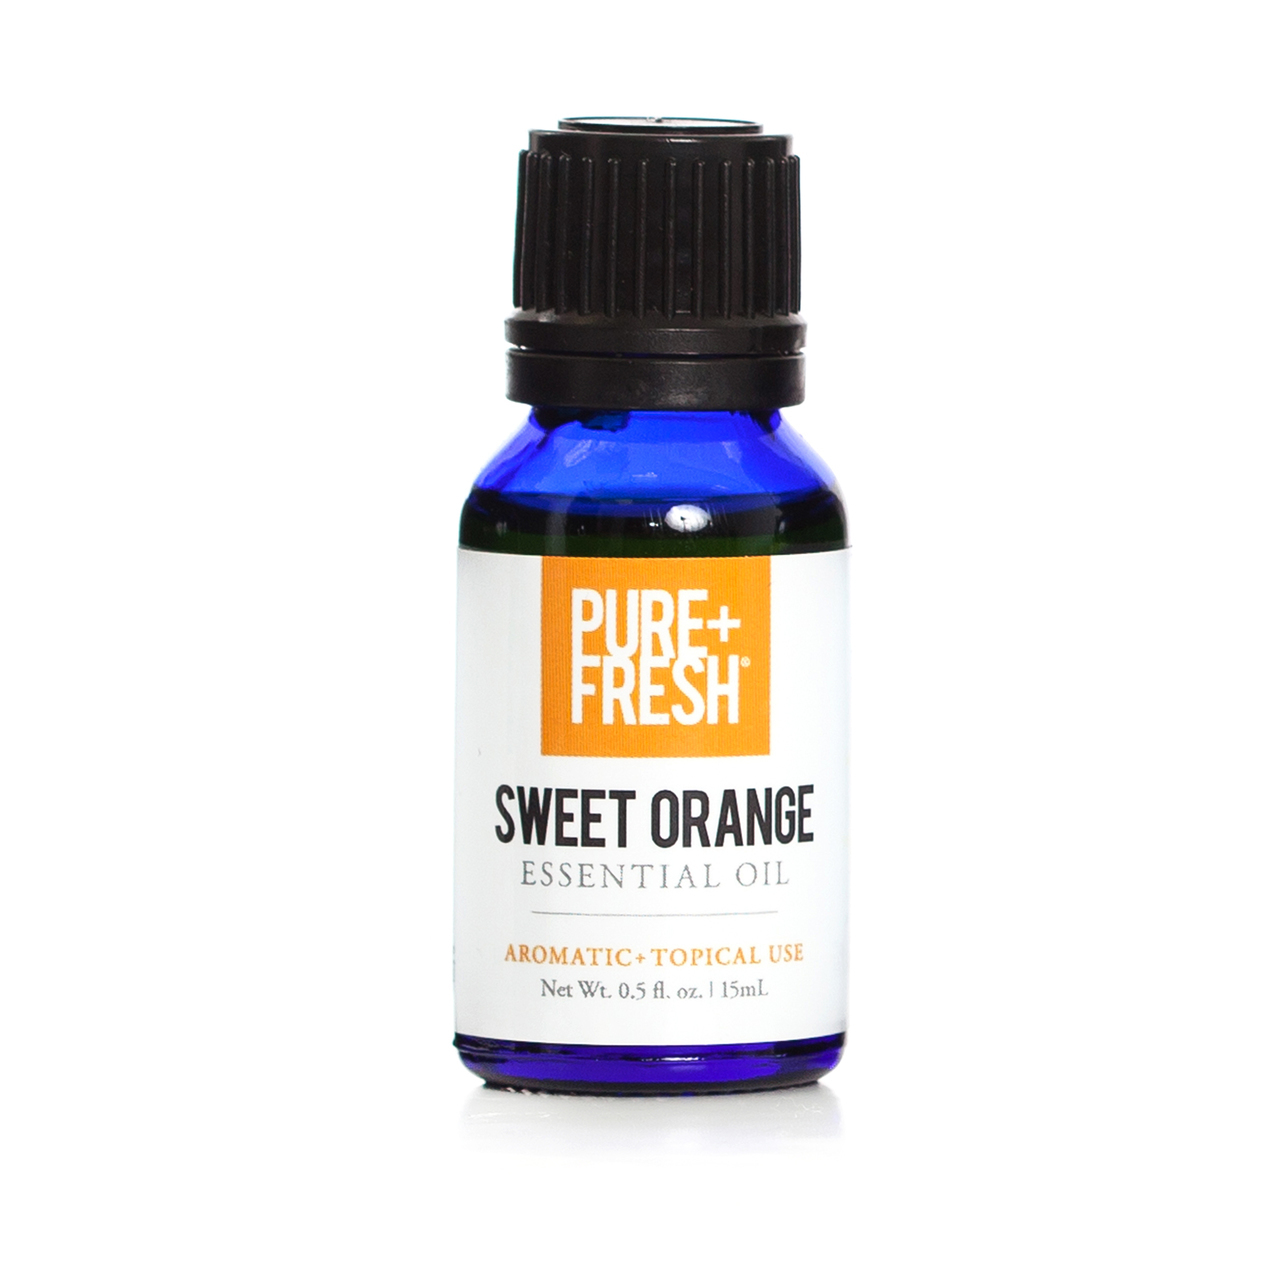 Pure+Fresh Essential Oil - Orange Sweet - 15ml